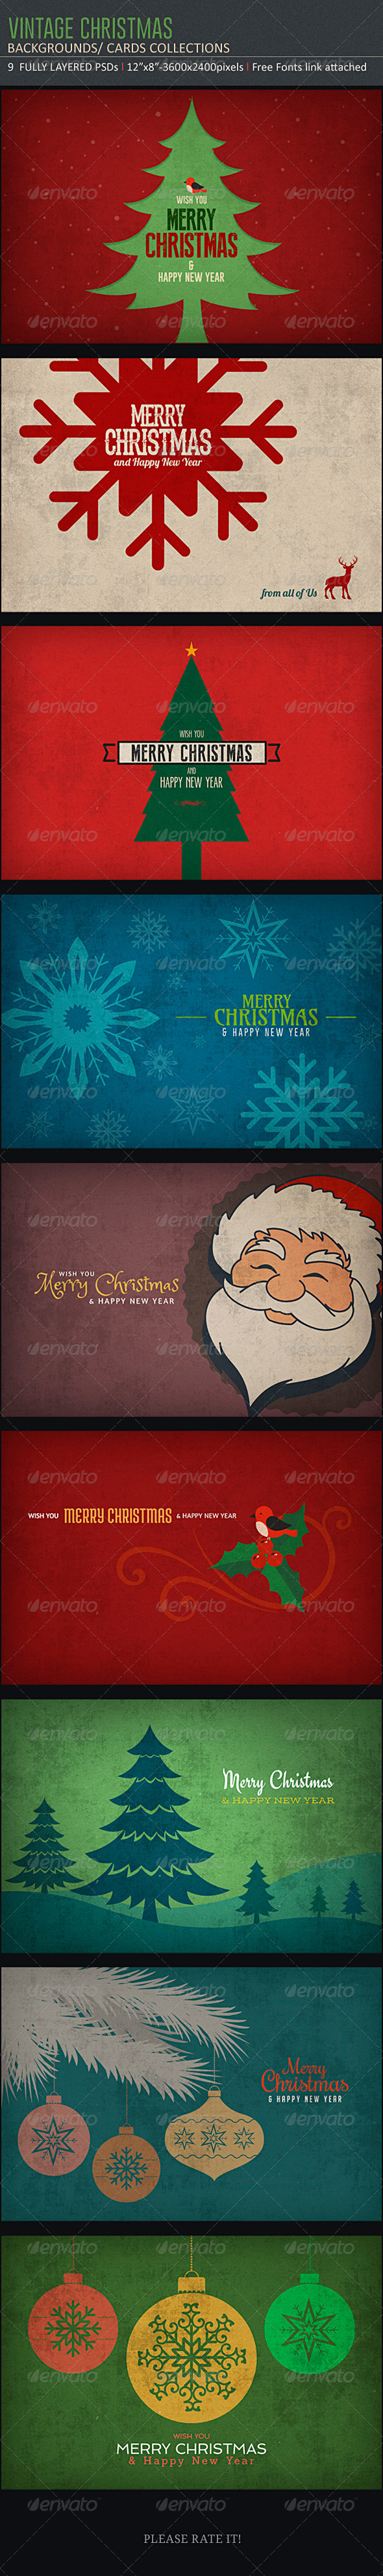 GraphicRiver Vintage Christmas Backgrounds 6010785